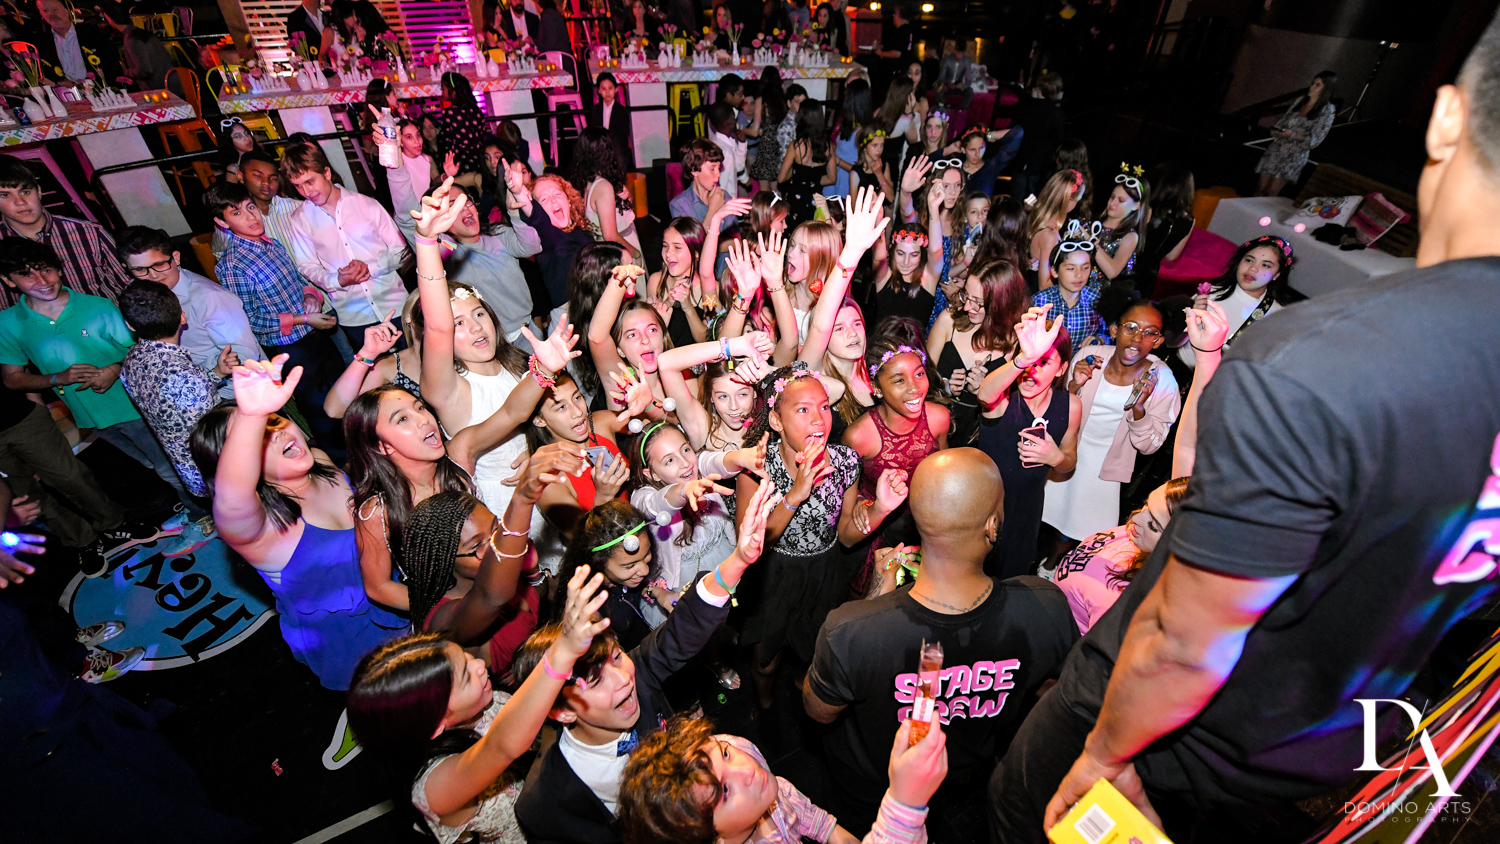 rock with u at Music Festival Bat Mitzvah at The Fillmore Miami Beach by Domino Arts Photography